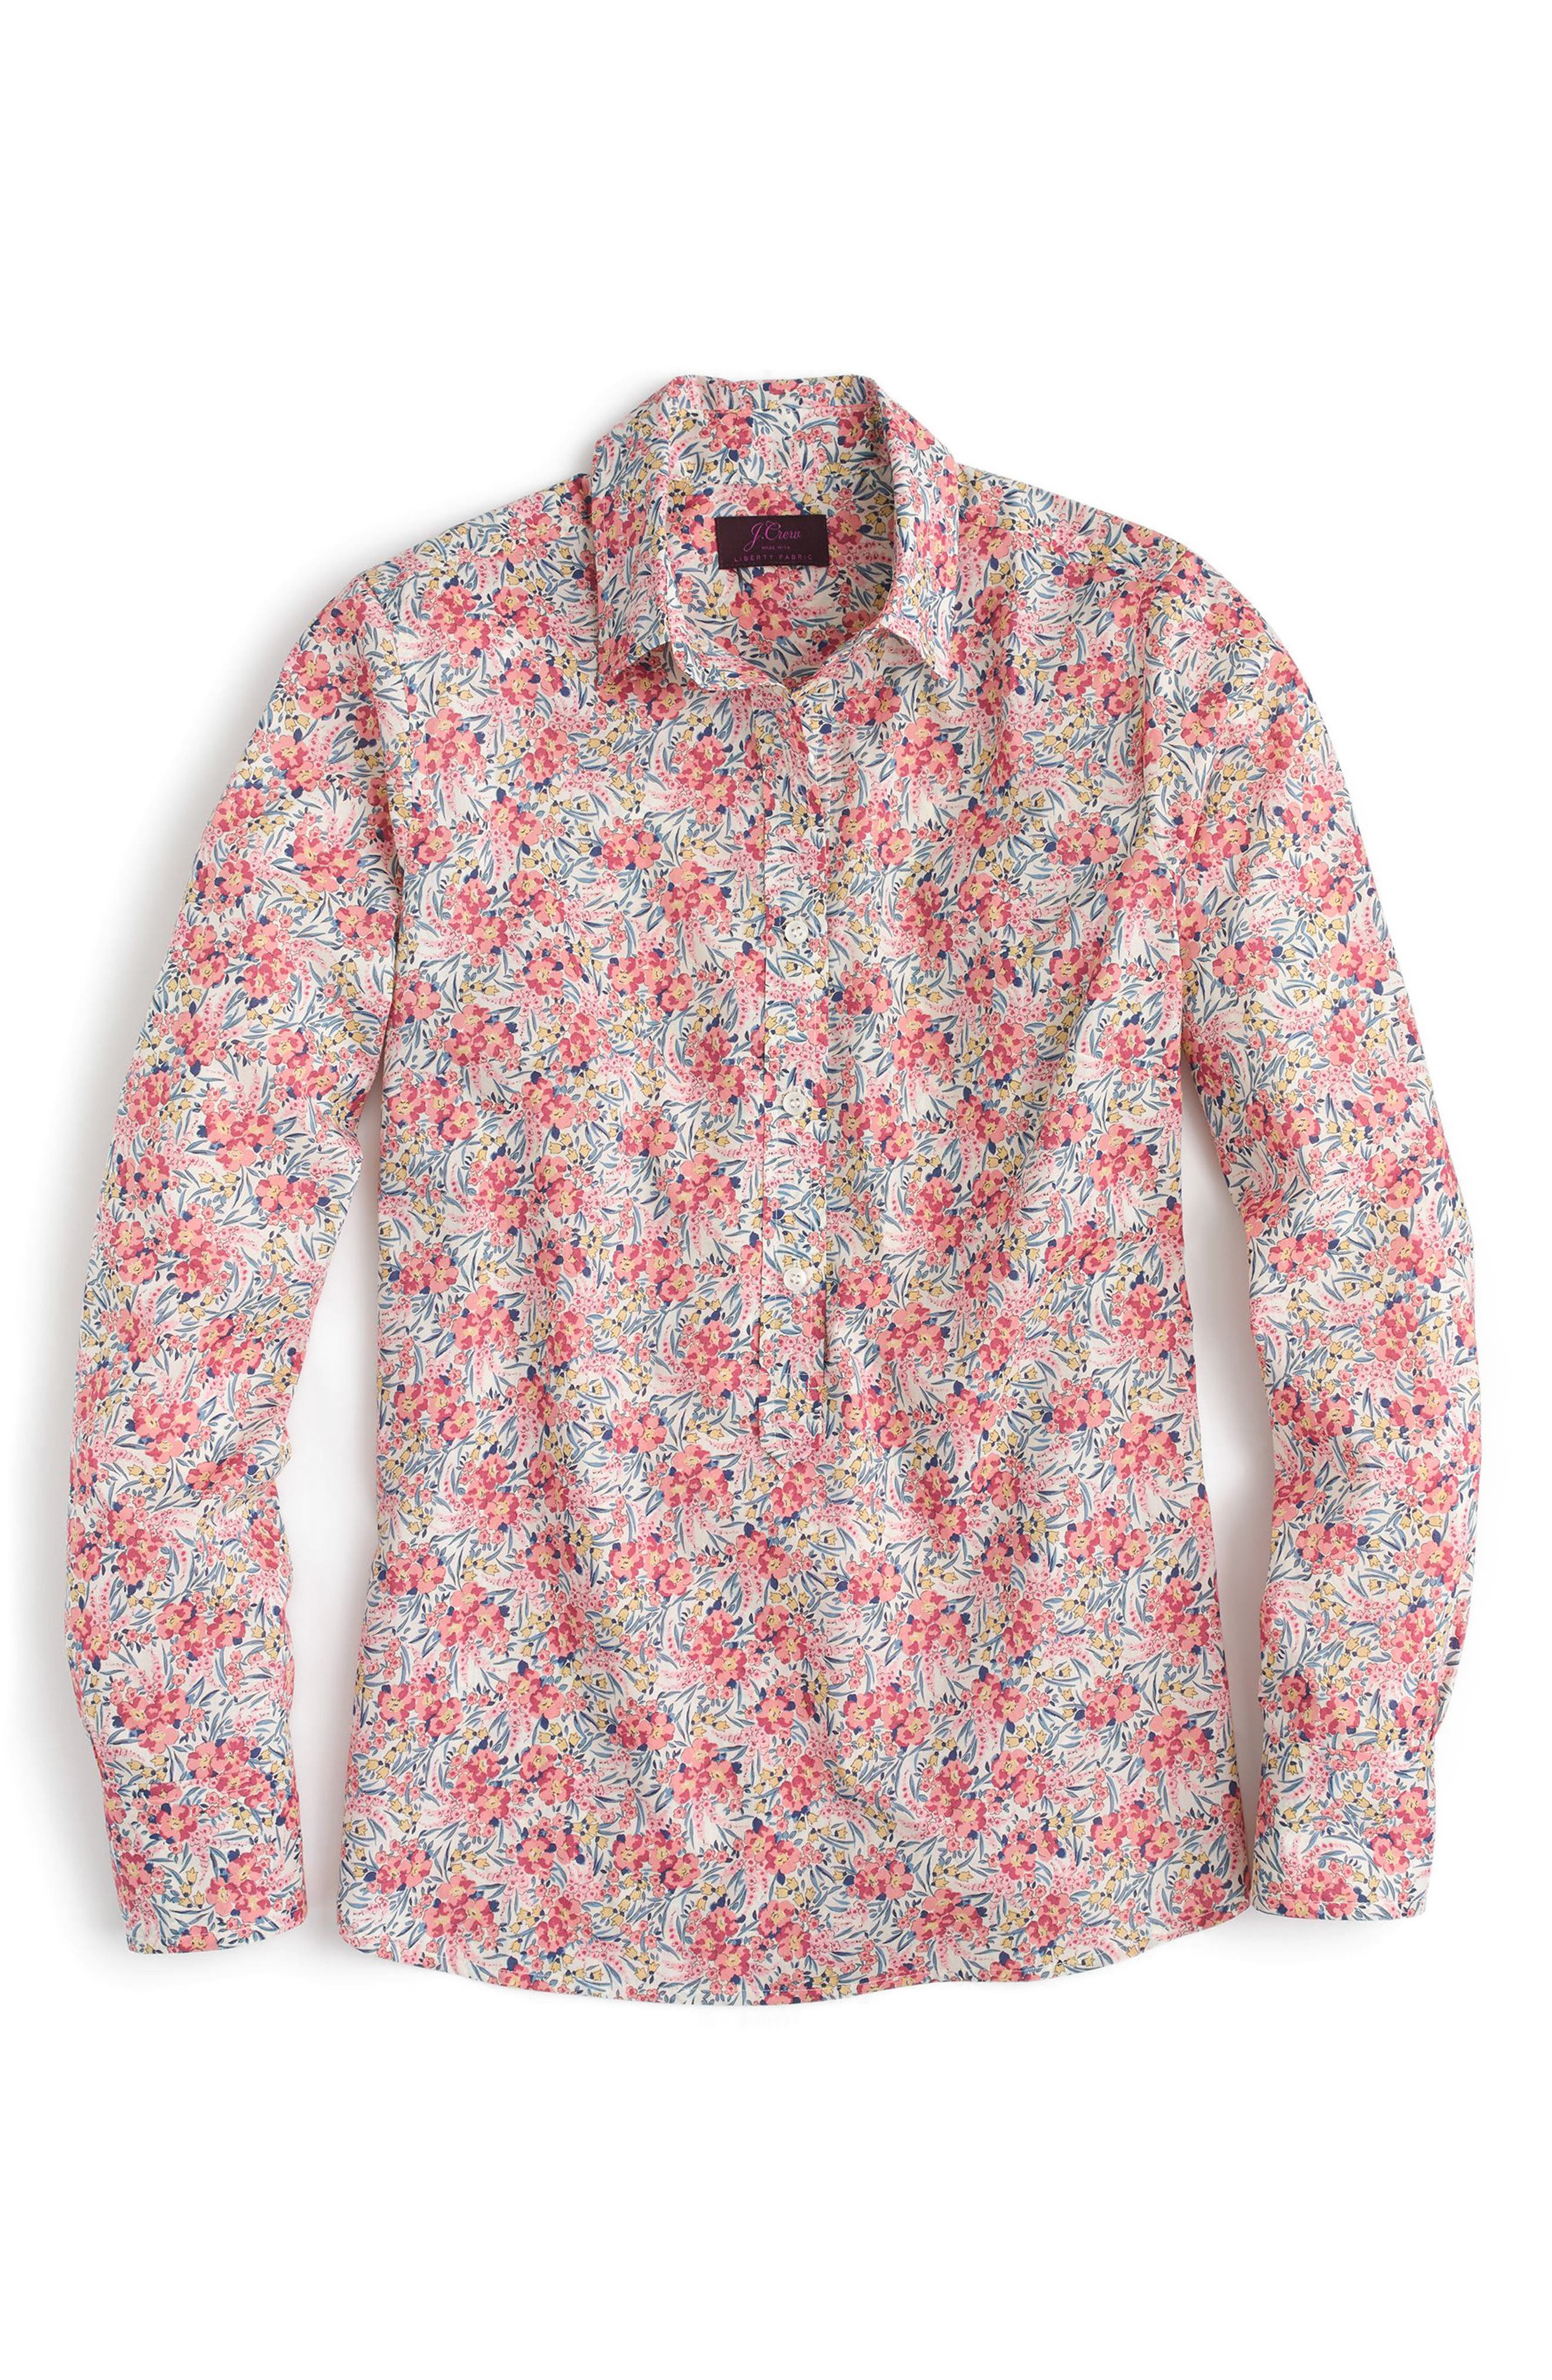 Classic Popover Blouse in Liberty<sup>®</sup> Swirling Petal Print,                             Alternate thumbnail 3, color,                             900